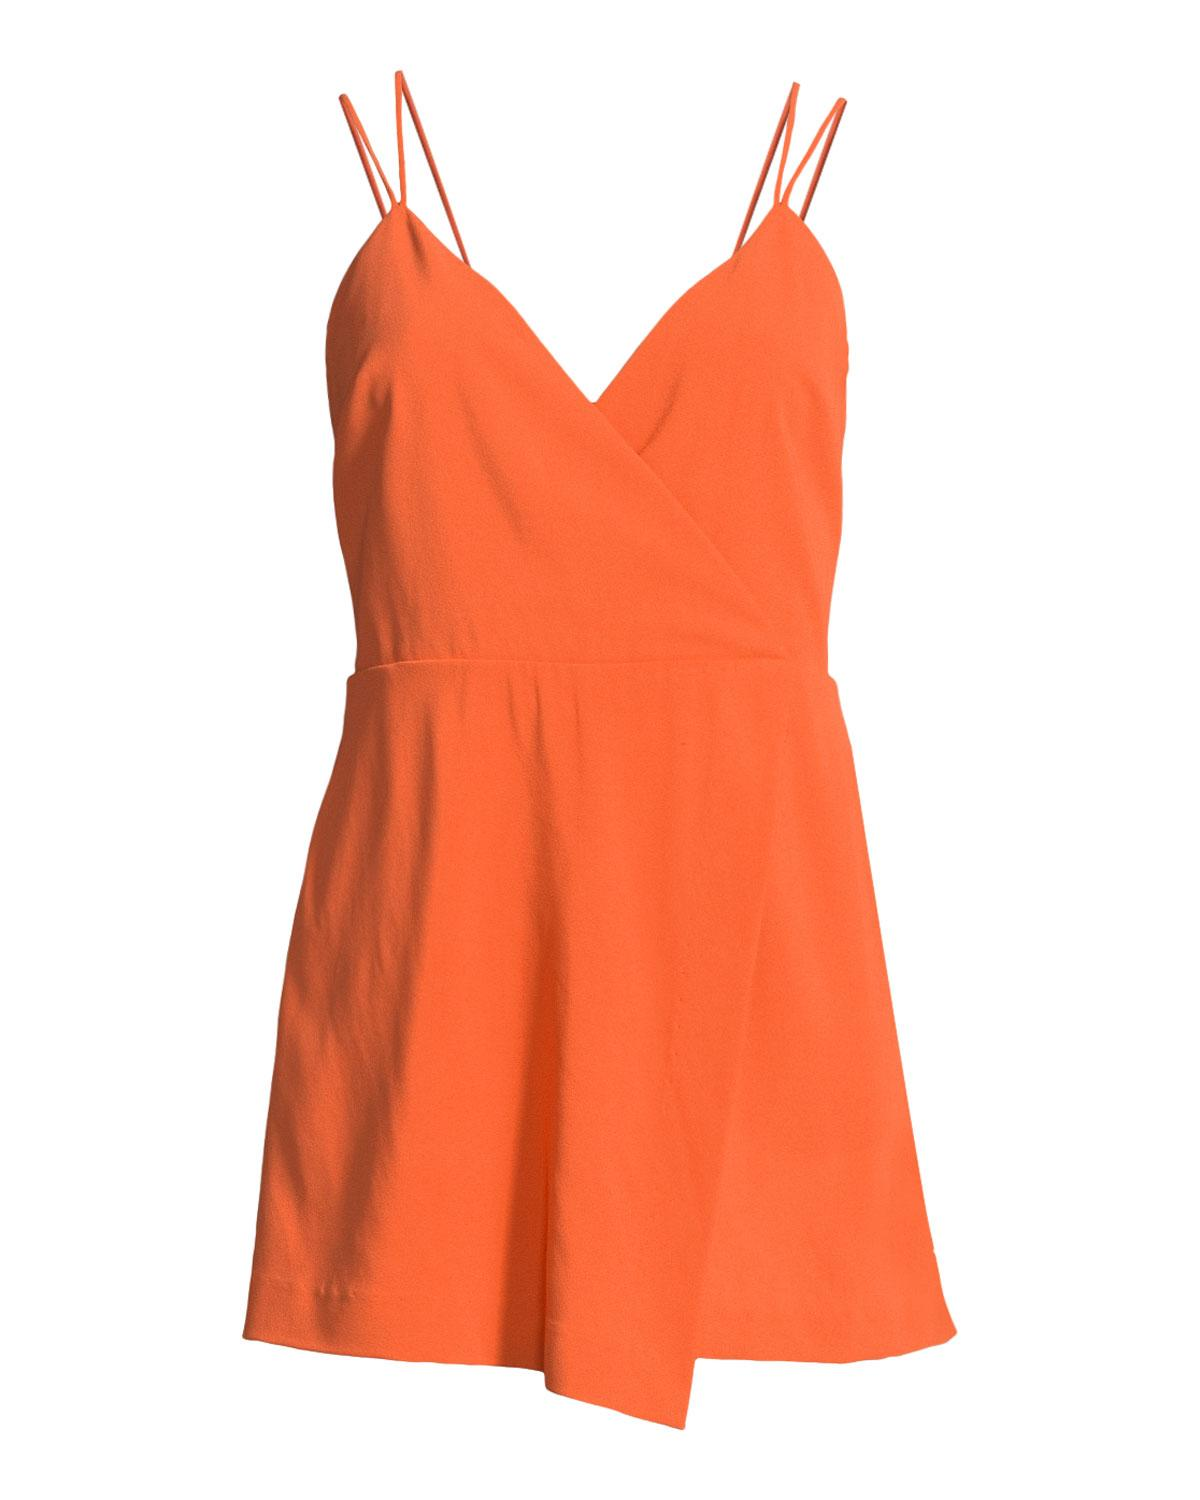 2ff16293d7 Alice + Olivia - Orange Emery Fitted Cross-front Romper - Lyst. View  fullscreen